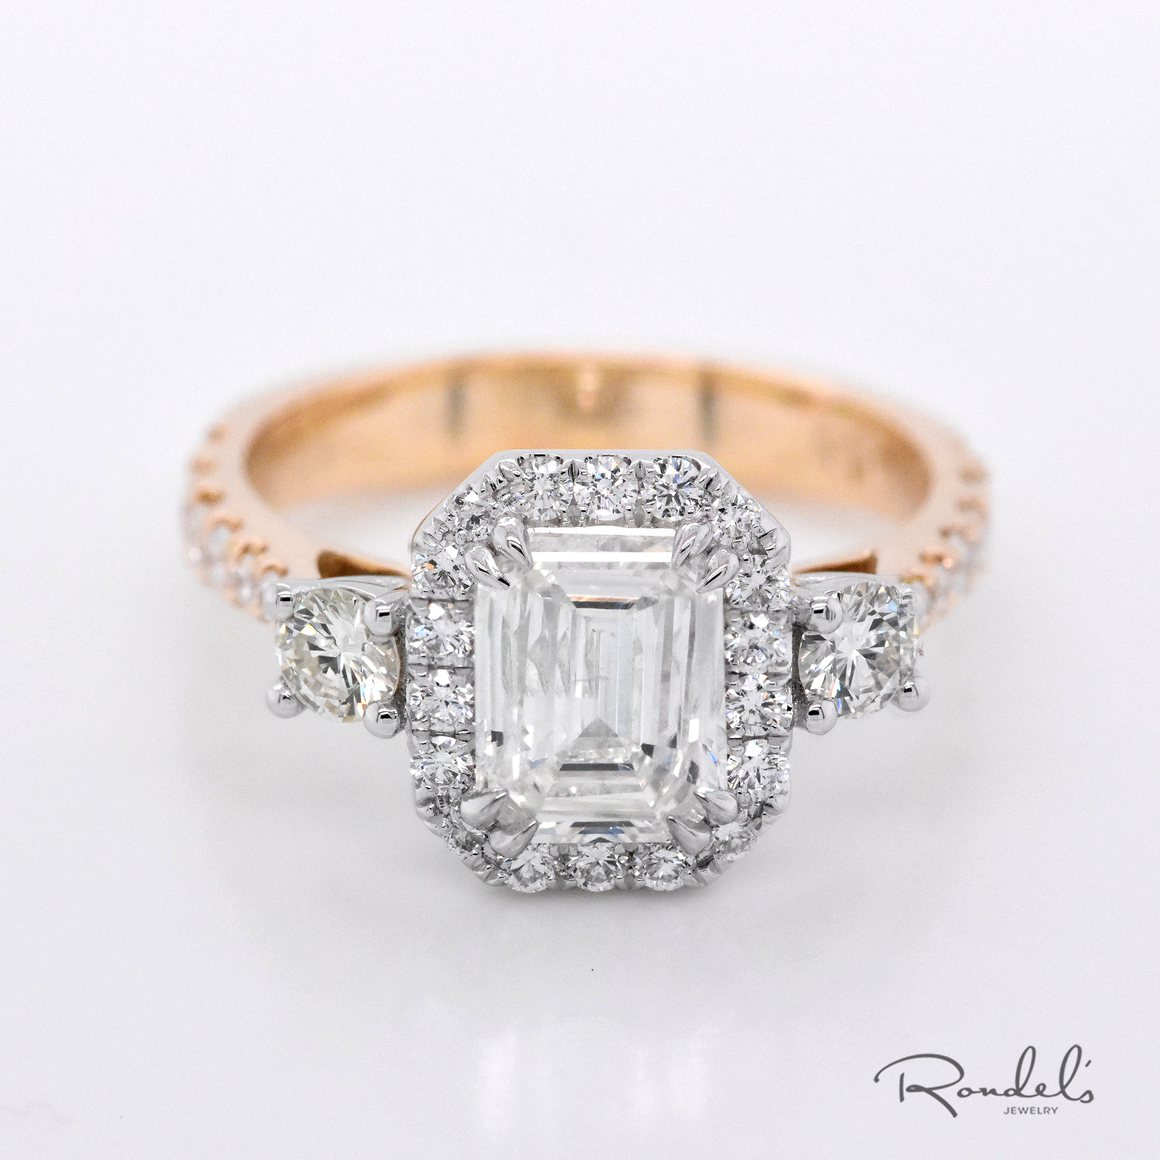 Vintage Inspired Two-Tone Engagement Ring